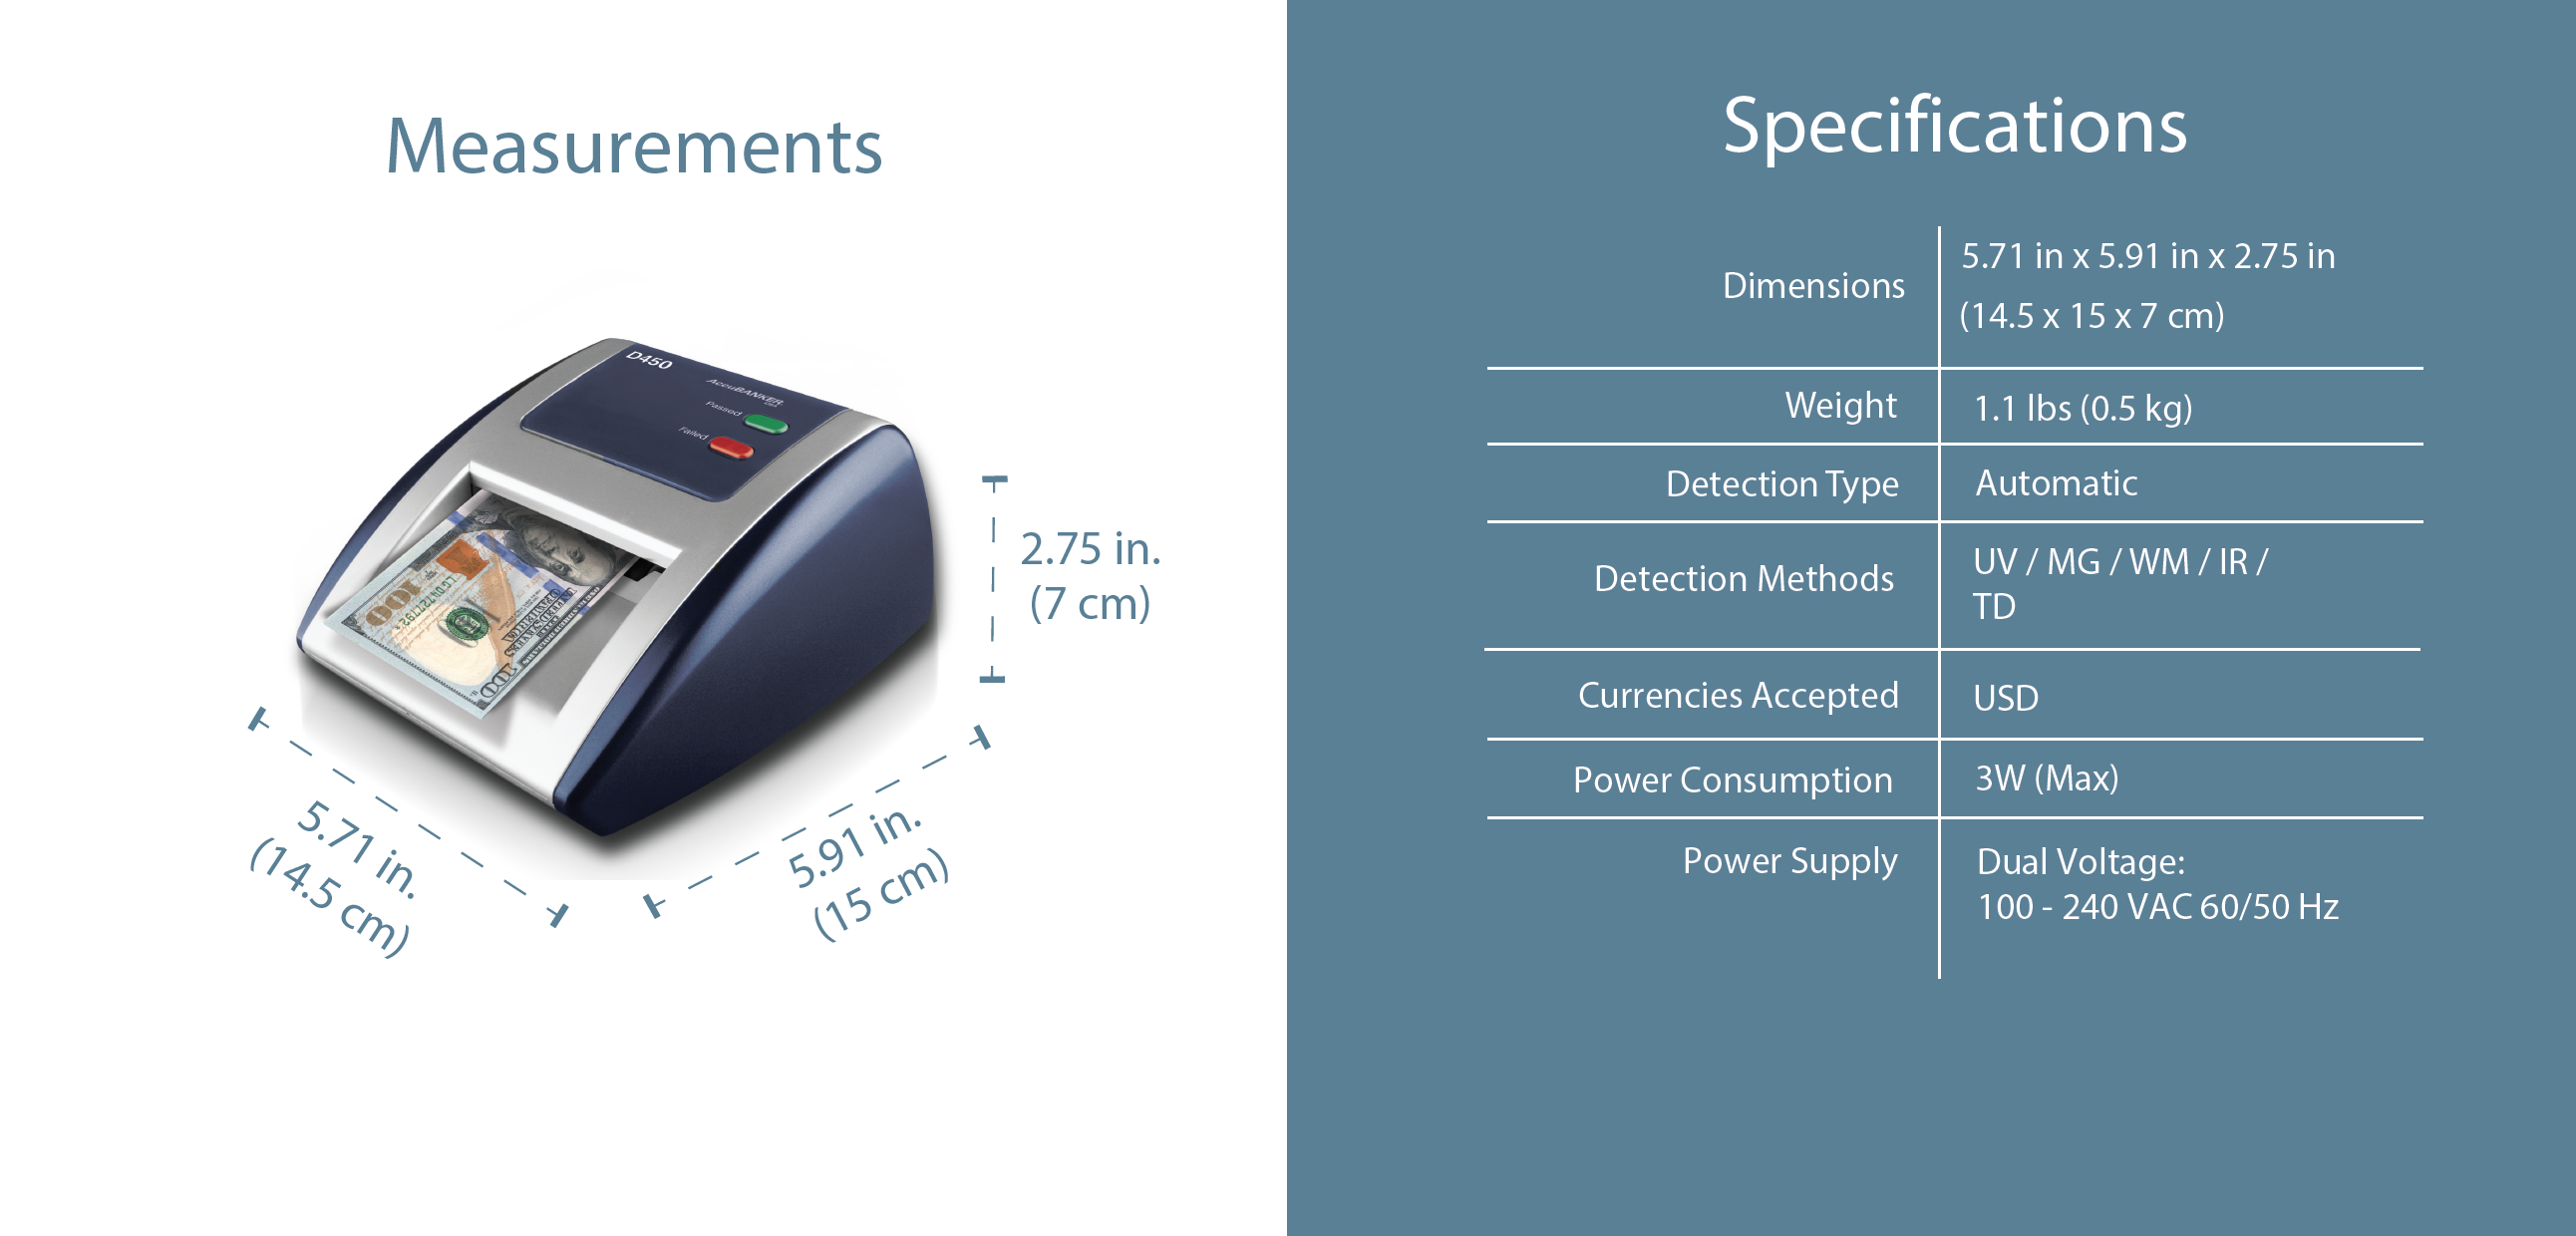 D450 Counterfeit Bill Scanner Features & Specifications